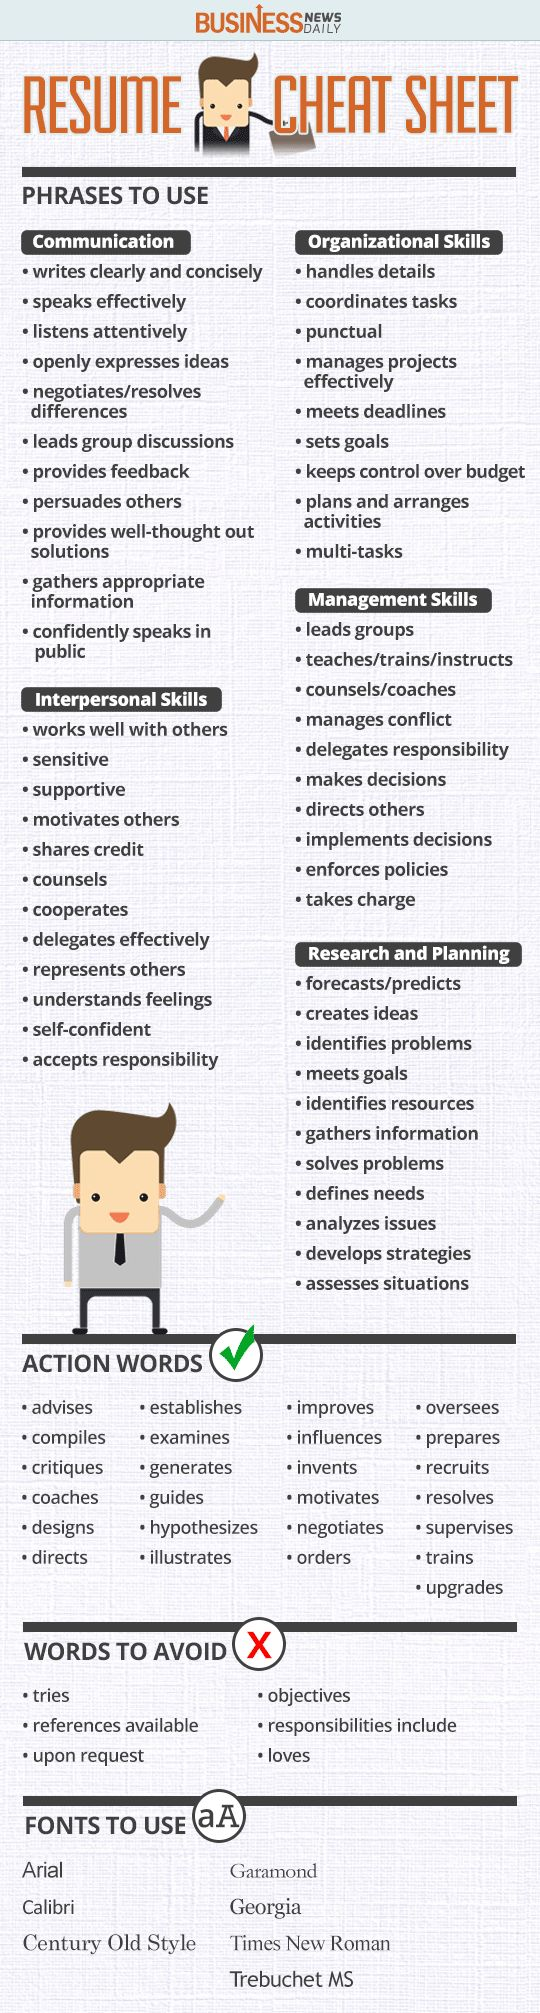 Opposenewapstandardsus  Picturesque  Ideas About Resume On Pinterest  Cv Format Resume Cv And  With Magnificent Resume Cheat Sheet Infographic Andrews Almost Done With A Complete Unit On Employment Which With Comely Infographics Resume Also Resume Summary Tips In Addition Deloitte Resume And Clerical Resume Examples As Well As Database Resume Additionally Rn Job Description For Resume From Pinterestcom With Opposenewapstandardsus  Magnificent  Ideas About Resume On Pinterest  Cv Format Resume Cv And  With Comely Resume Cheat Sheet Infographic Andrews Almost Done With A Complete Unit On Employment Which And Picturesque Infographics Resume Also Resume Summary Tips In Addition Deloitte Resume From Pinterestcom